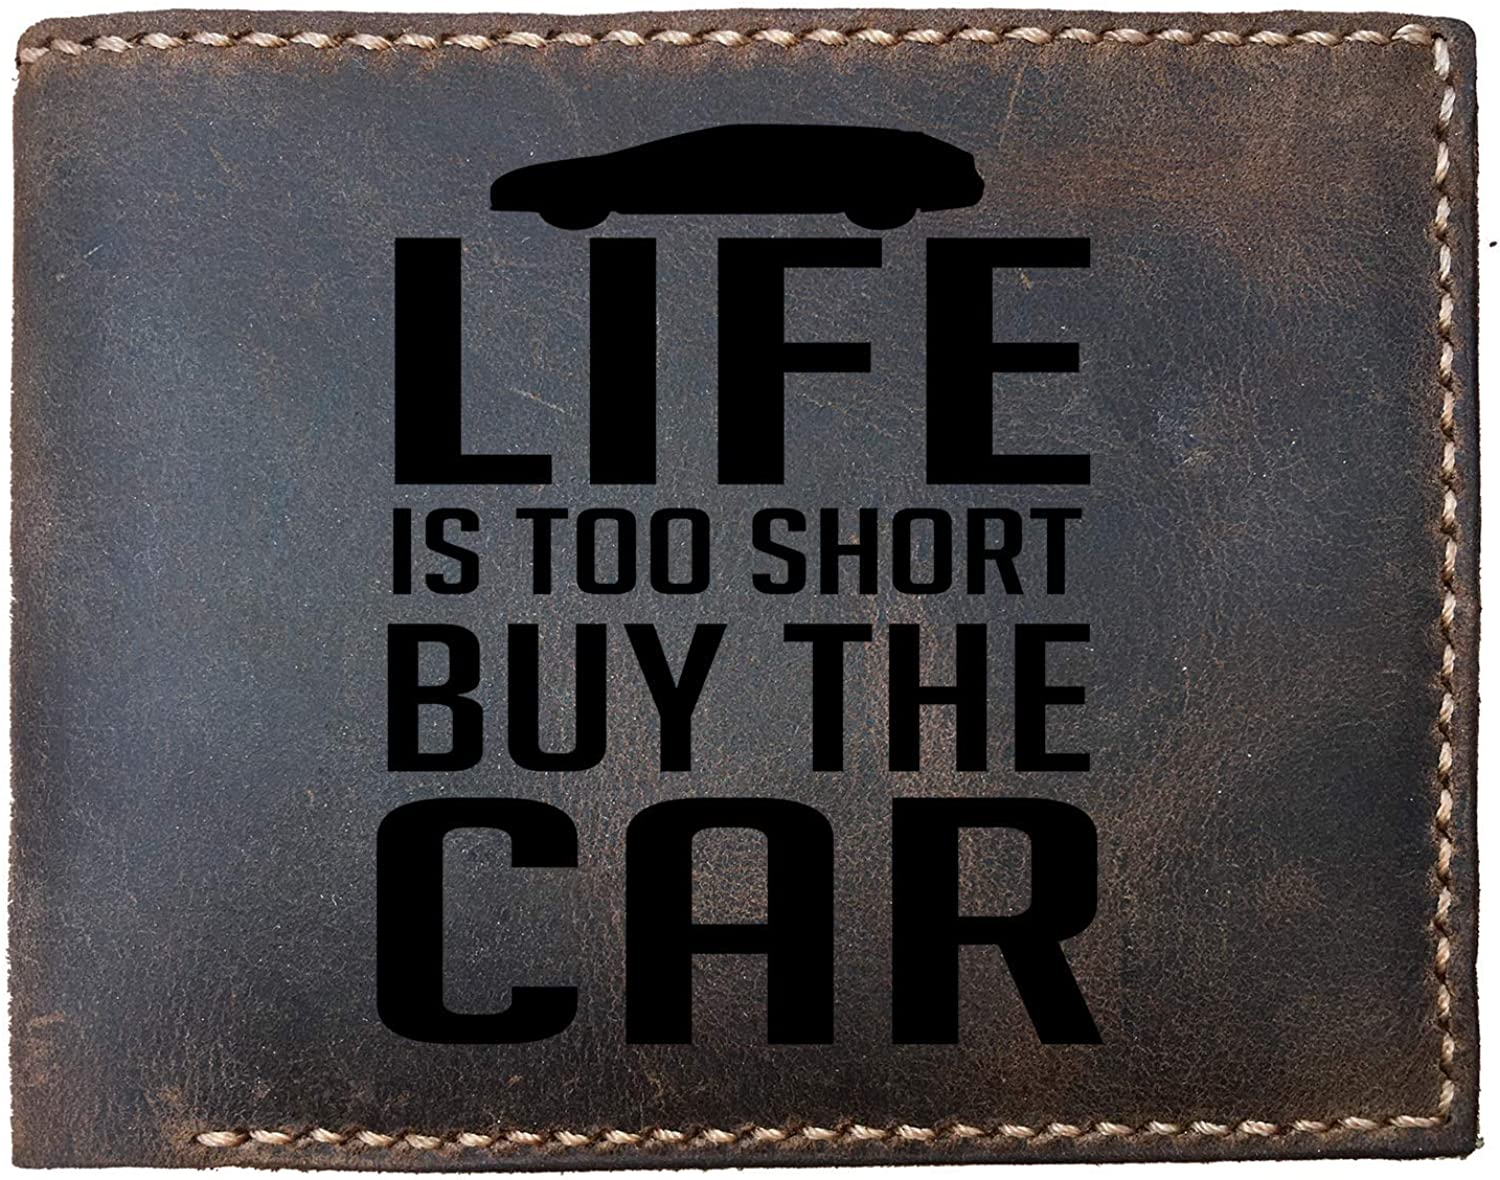 Lobsteray Life Is Too Short Buy The Car Funny Quote Custom Laser Engraved Leather Bifold Wallet for Men